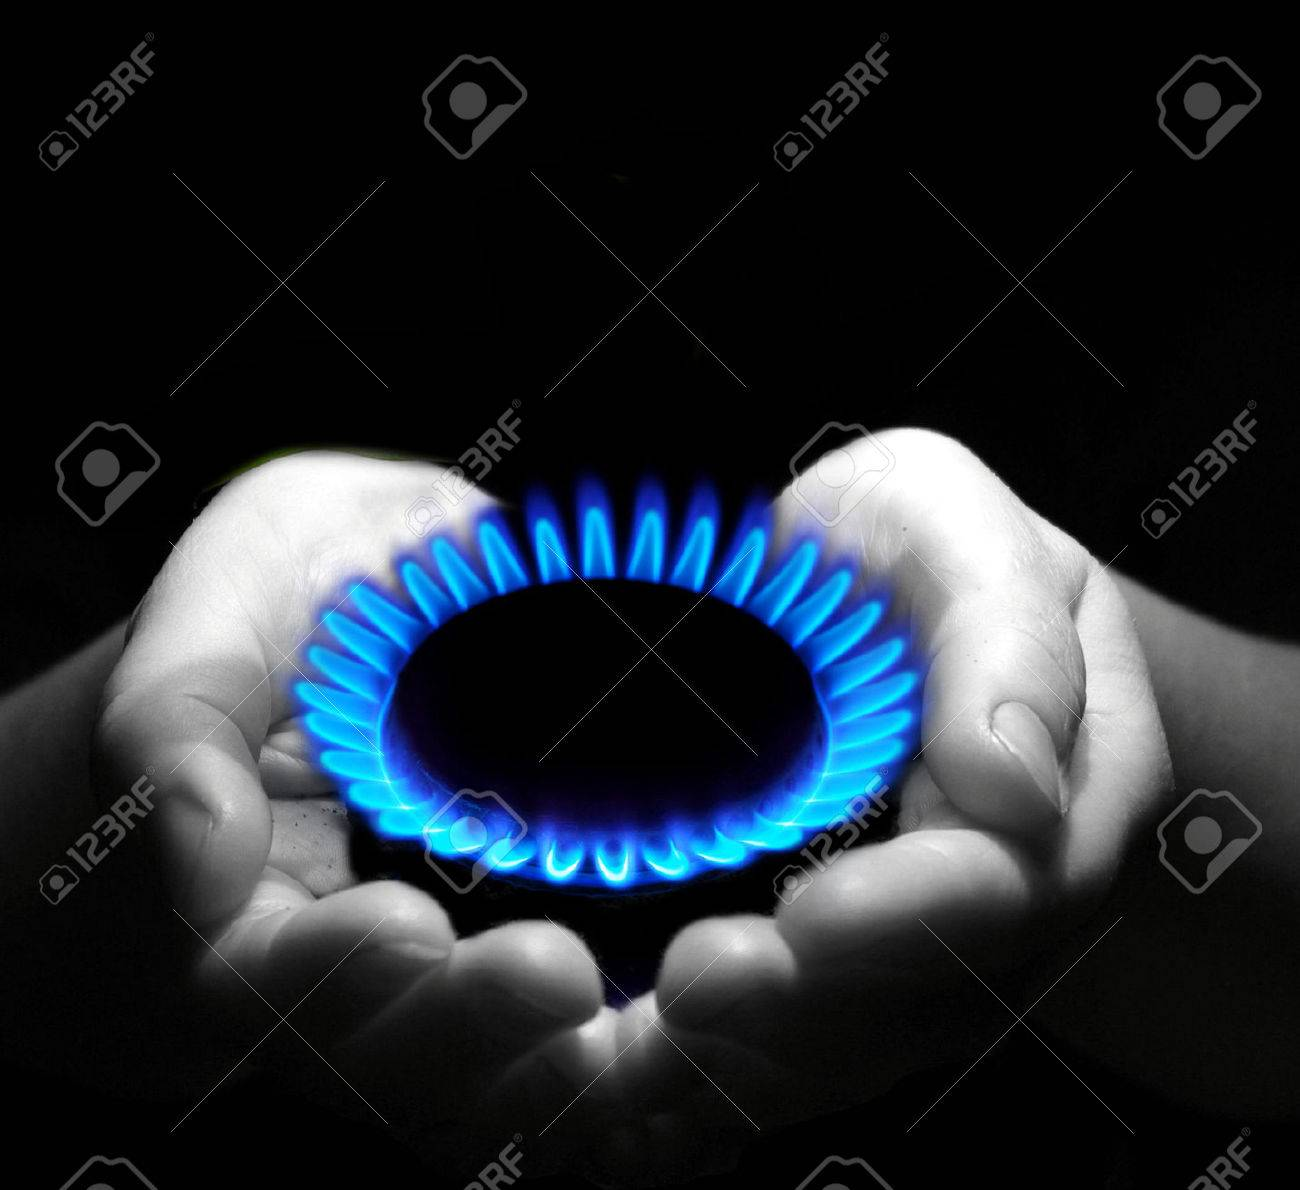 Hands holding a flame gas Stock Photo - 33925031